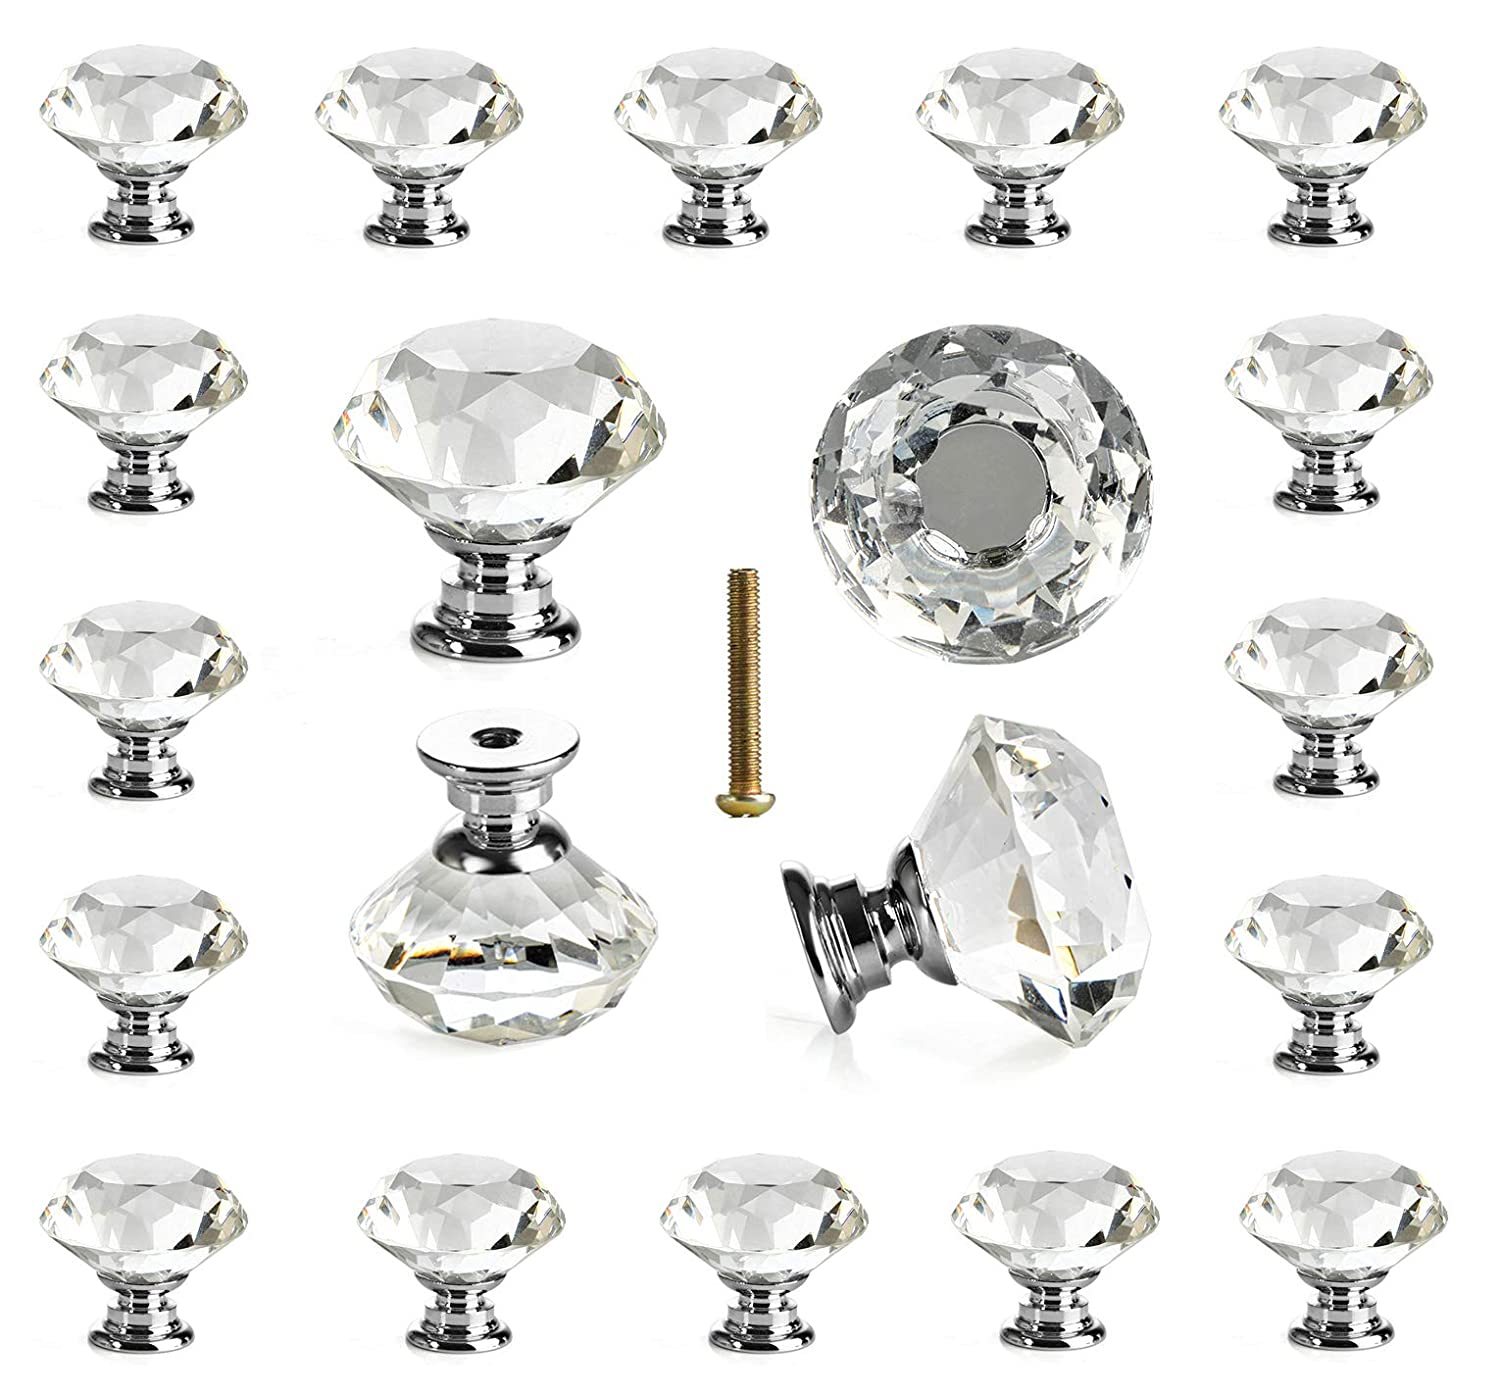 25 Pcs Glass Cabinet Knobs Crystal Drawer Pulls Clear 30 Mm Diamond For  Kitchen, Bathroom Cabinet, Dresser And Cupboard By DeElf     Amazon.com